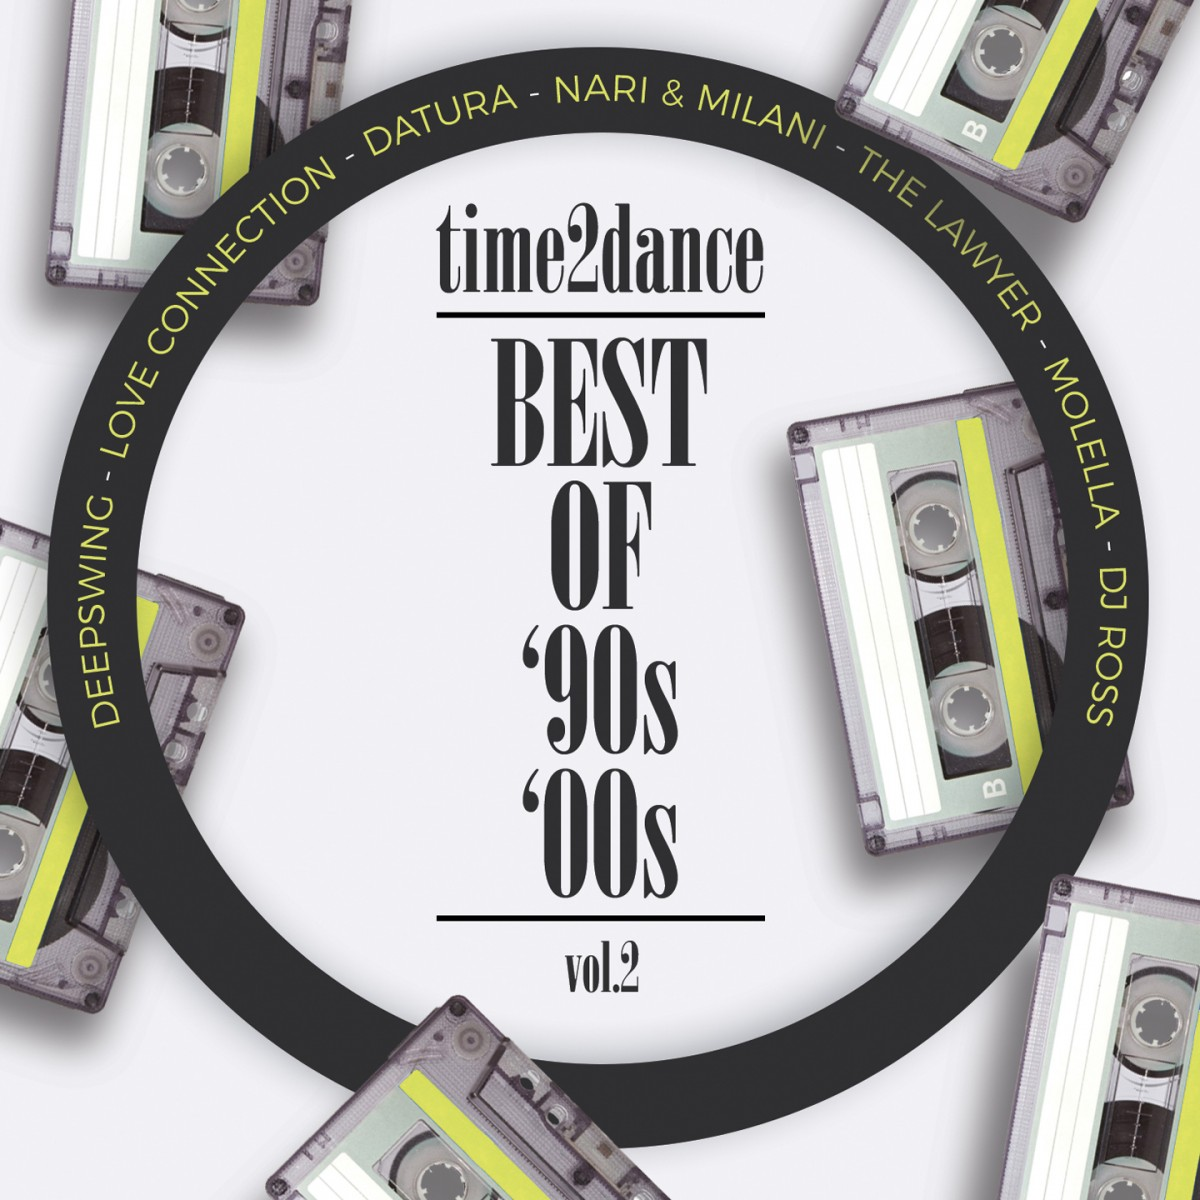 TIME2DANCE: BEST OF '90s - '00s Vol.2